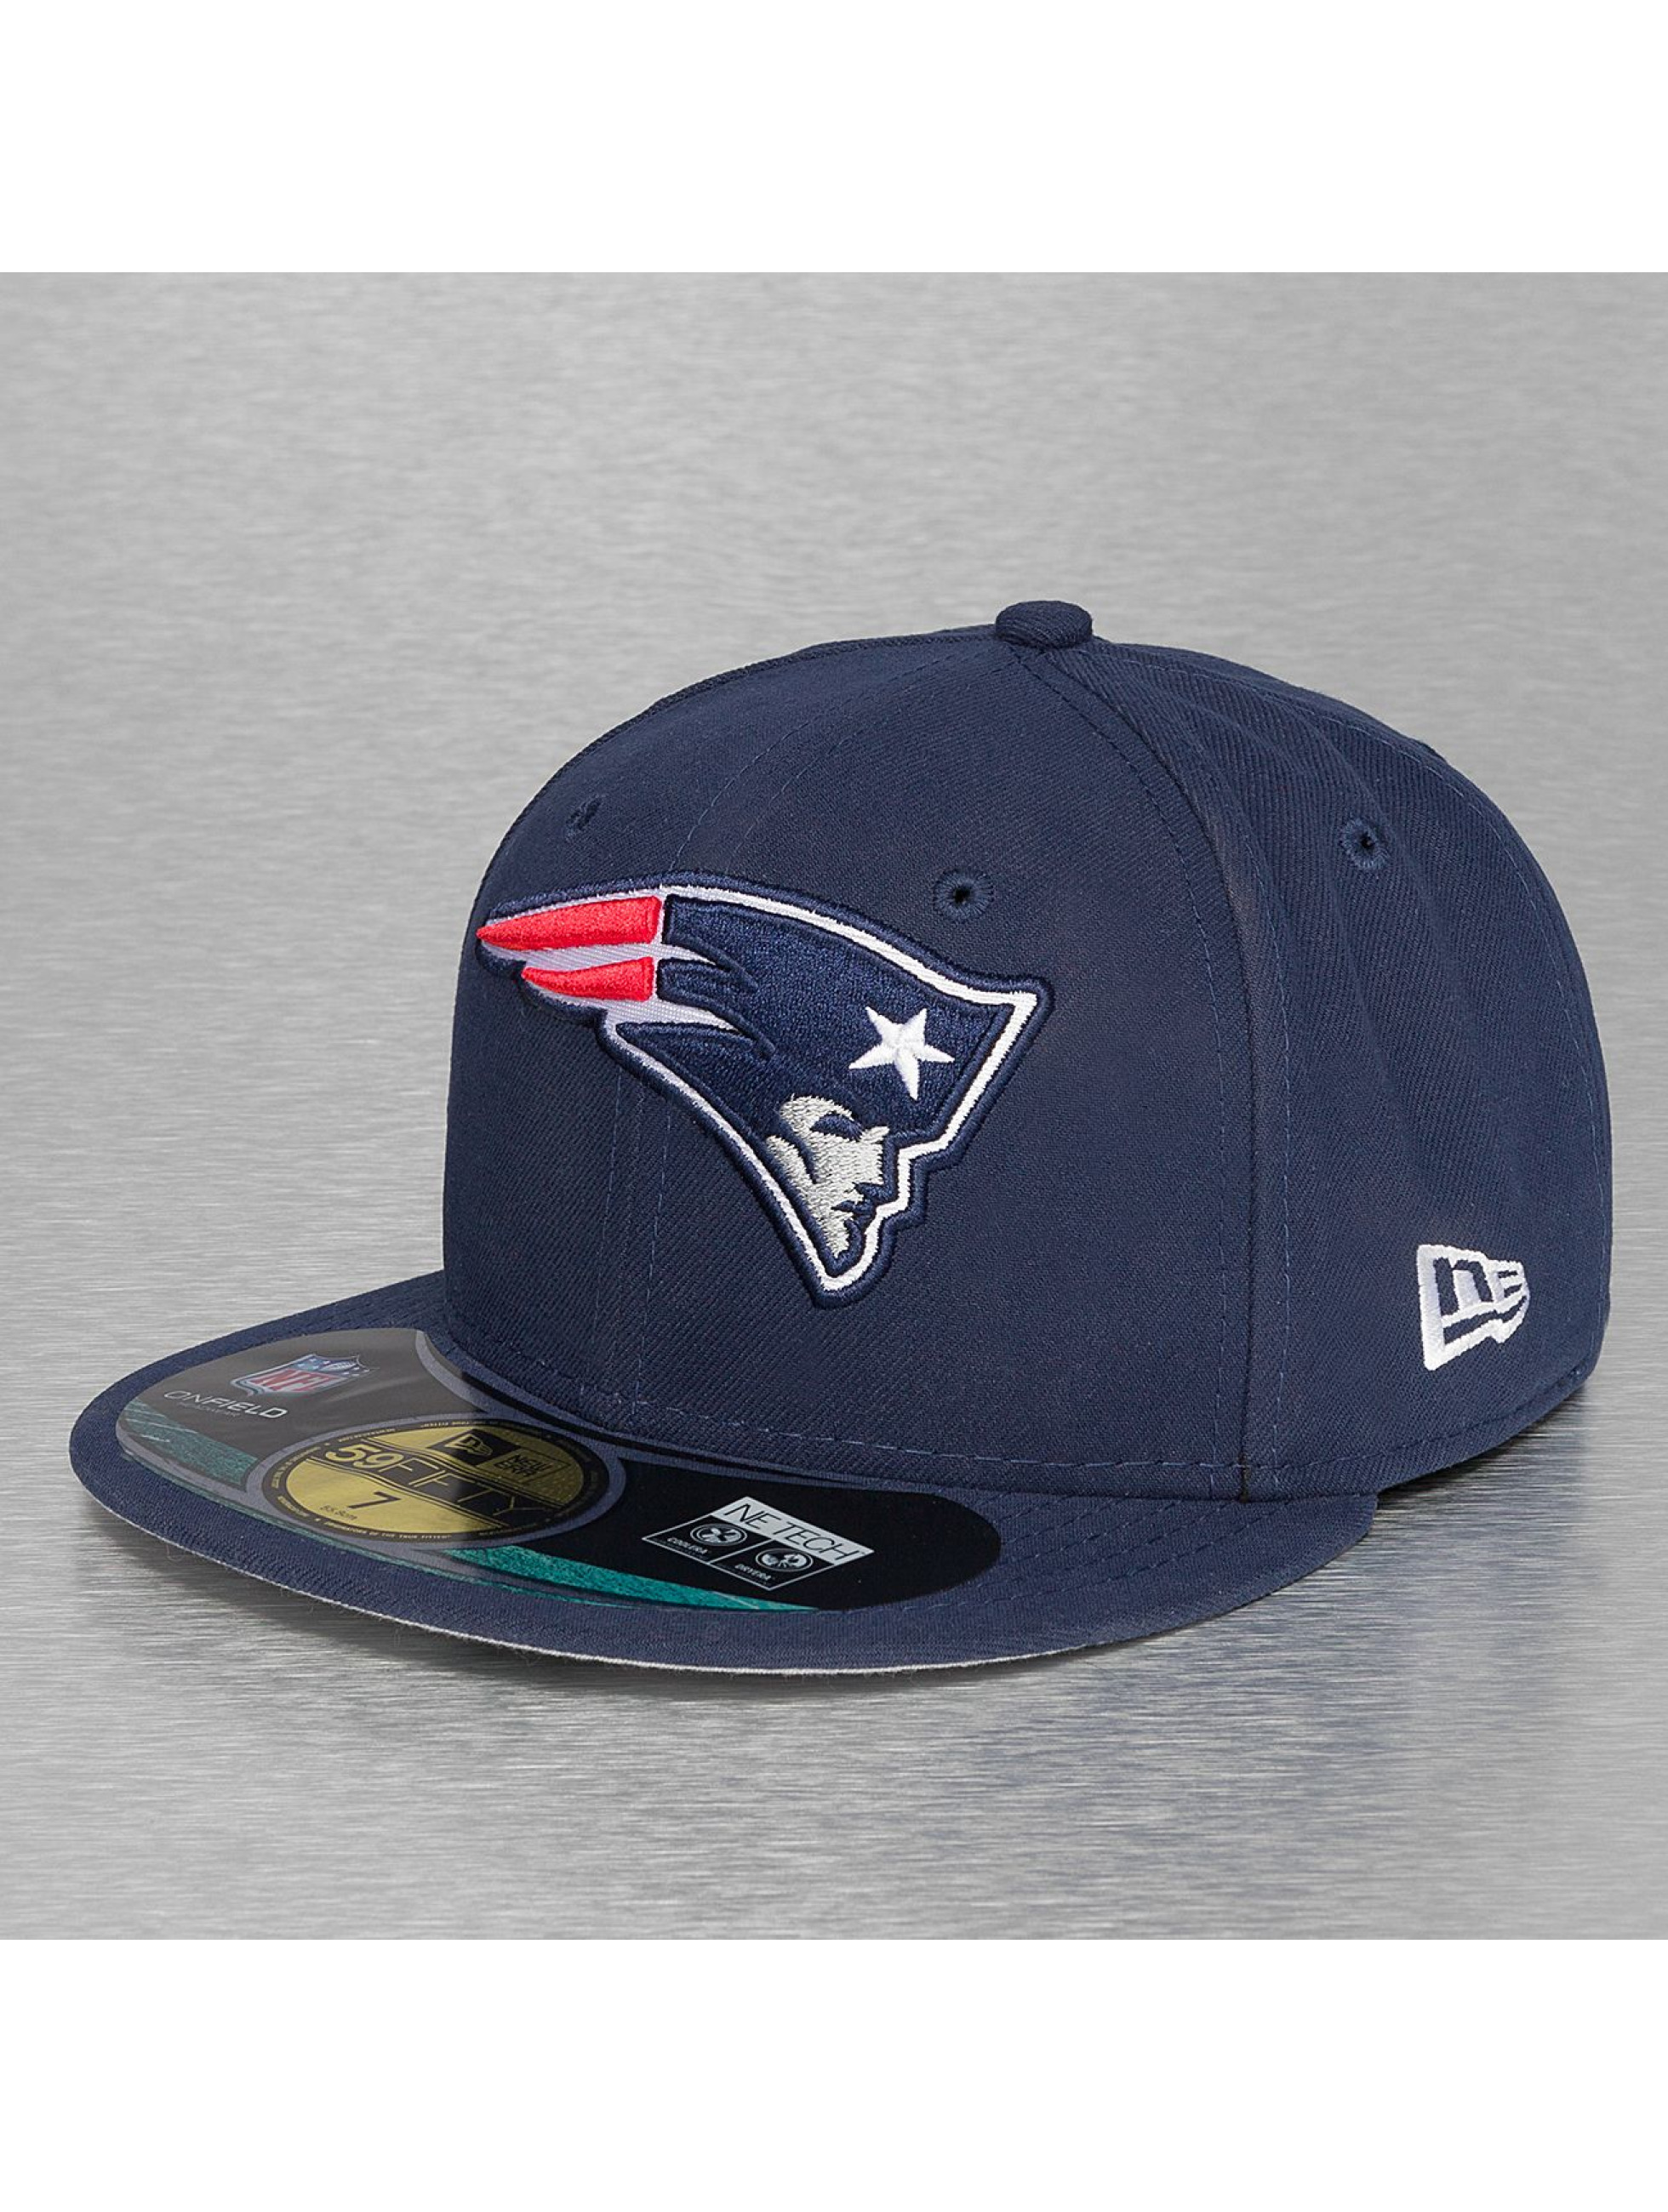 New Era Бейсболка NFL On Field New England Patriots 59Fifty синий